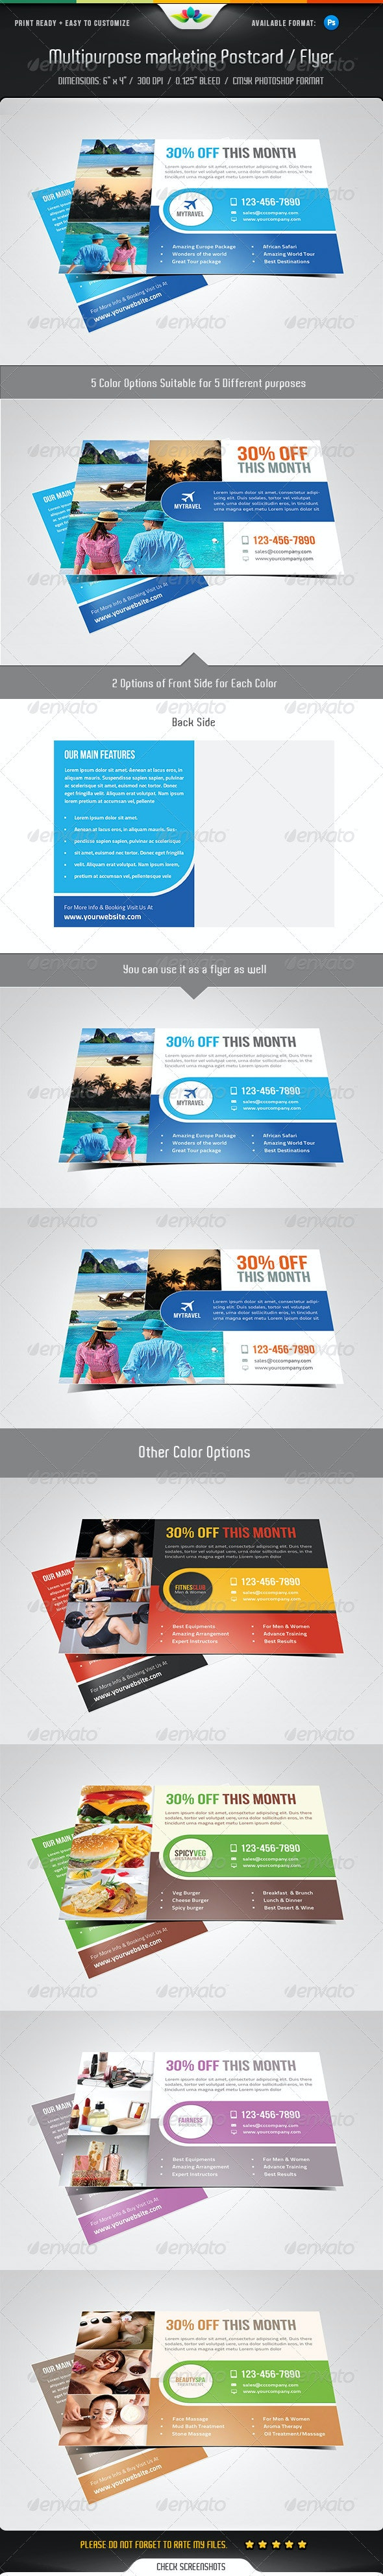 Multipurpose Marketing Postcard / Flyer Template - Commerce Flyers